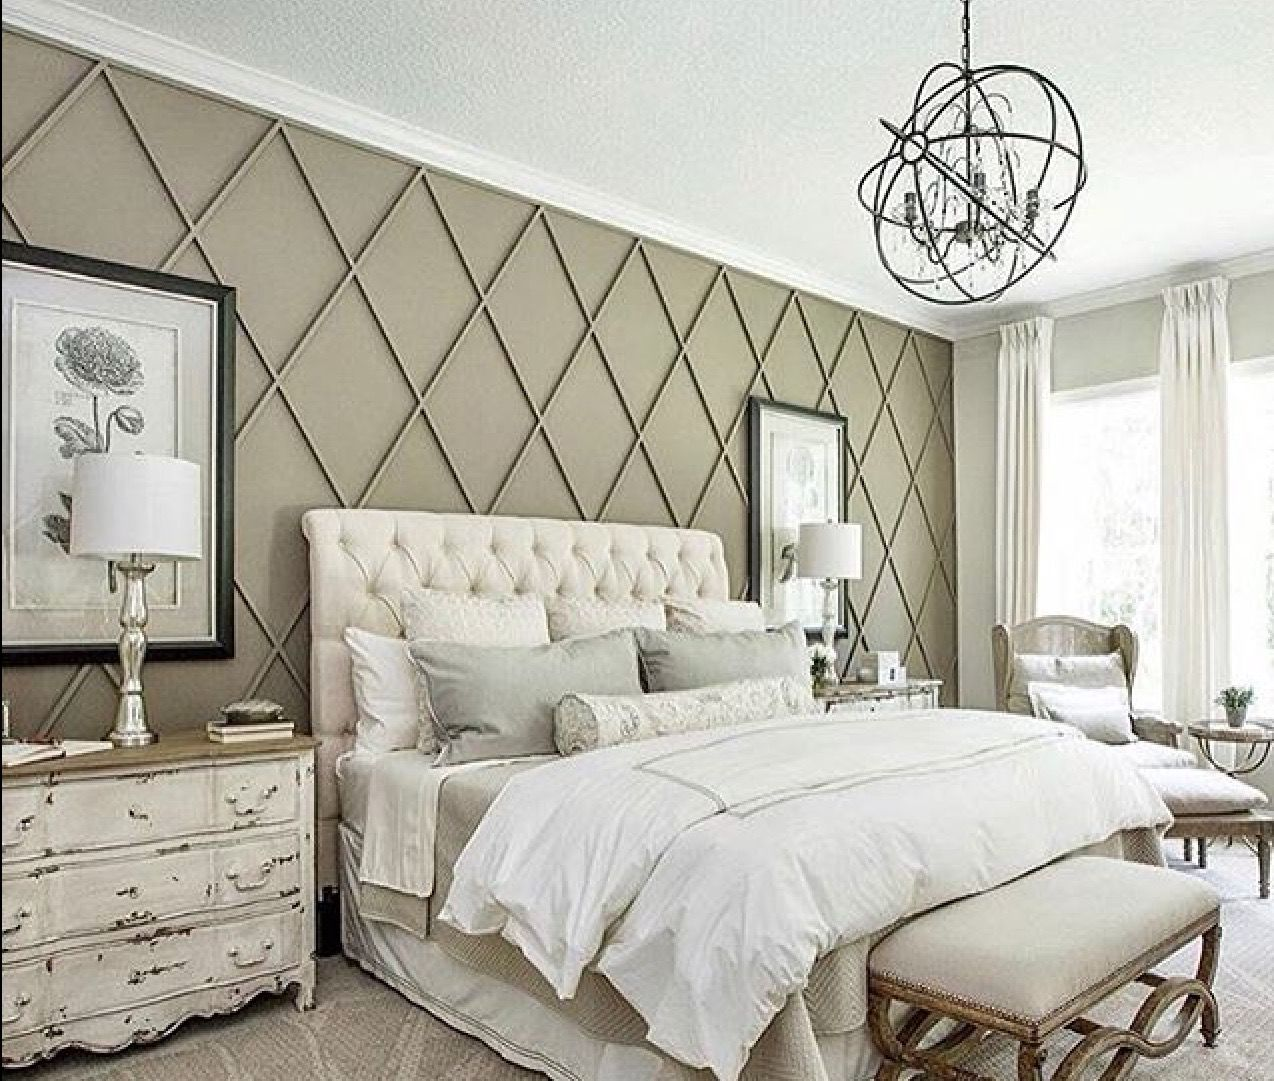 Pin By Shaylee Bartlett On Home Decor